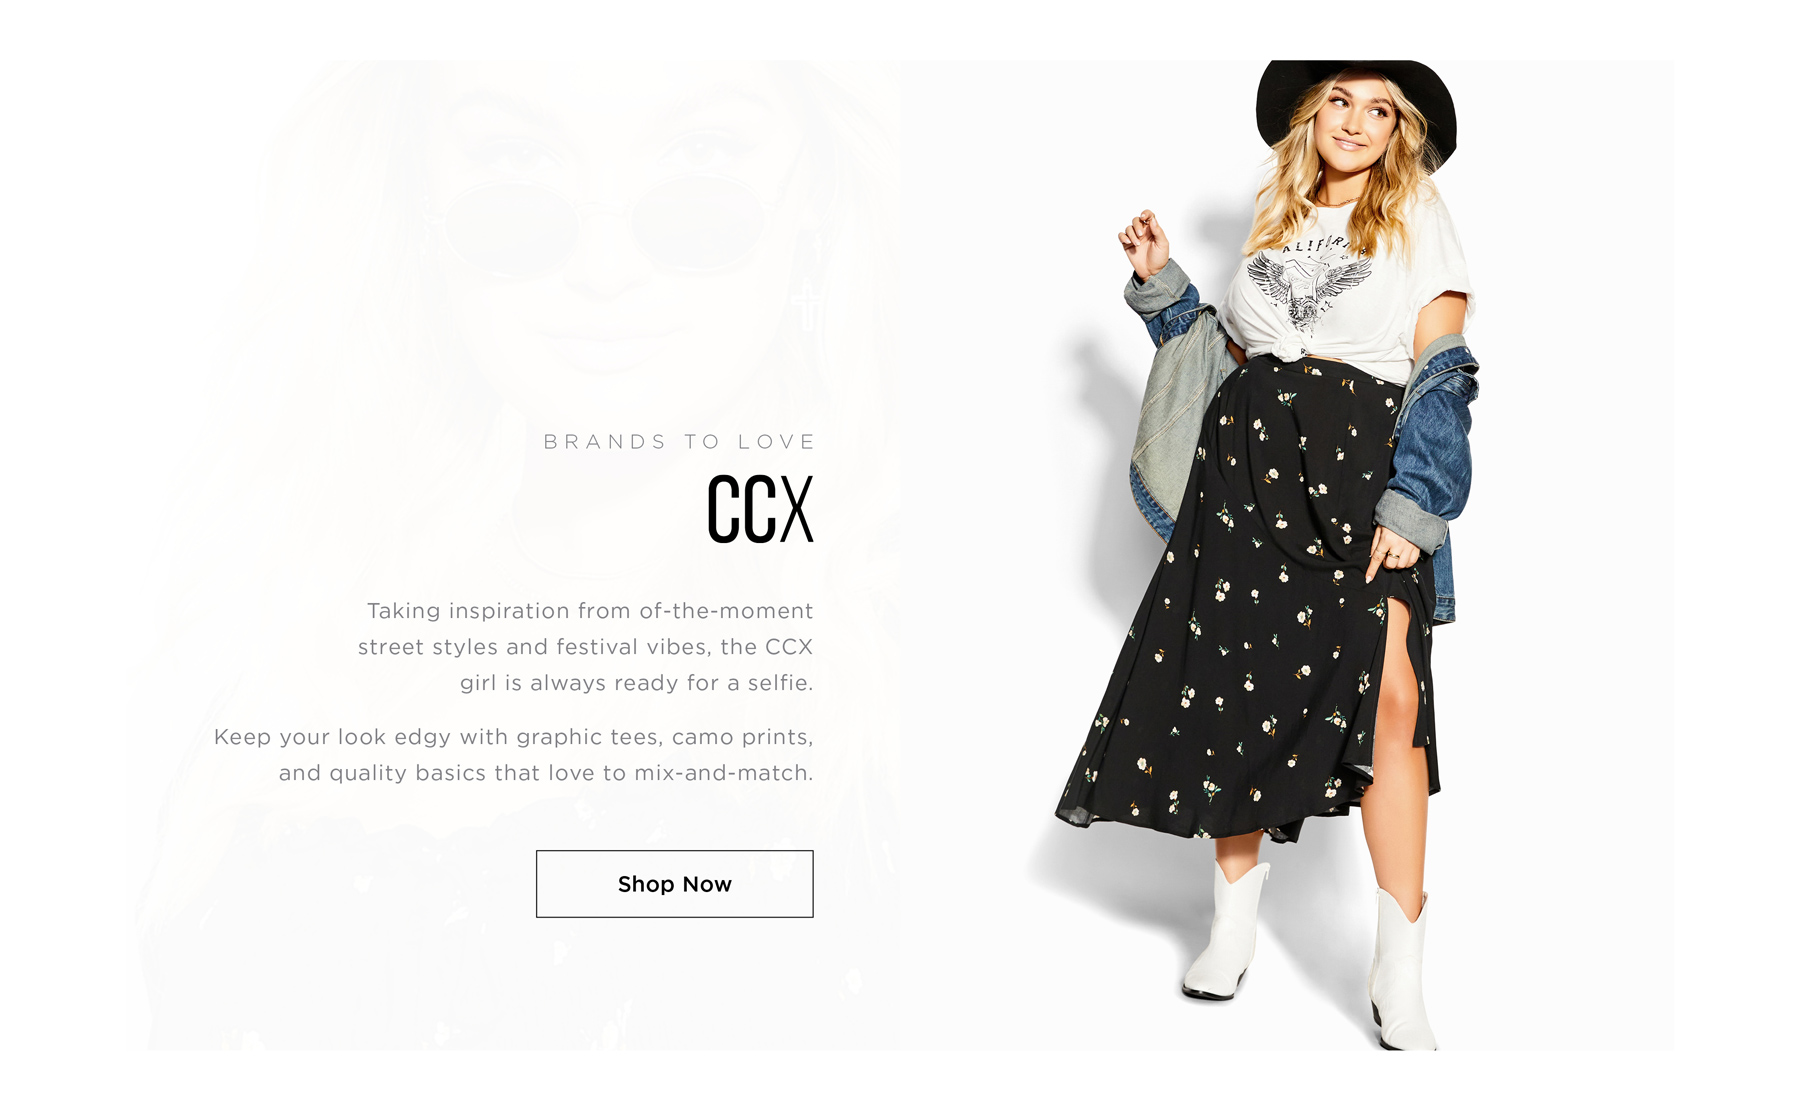 BRANDS TO LOVE: CCX - Taking inspiration from of-the-moment street styles and festival vibes, the CCX girl is always ready for a selfie. Keep your look edgy with graphic tees, camo prints and quality basics that love to mix-and-match - SHOP NOW